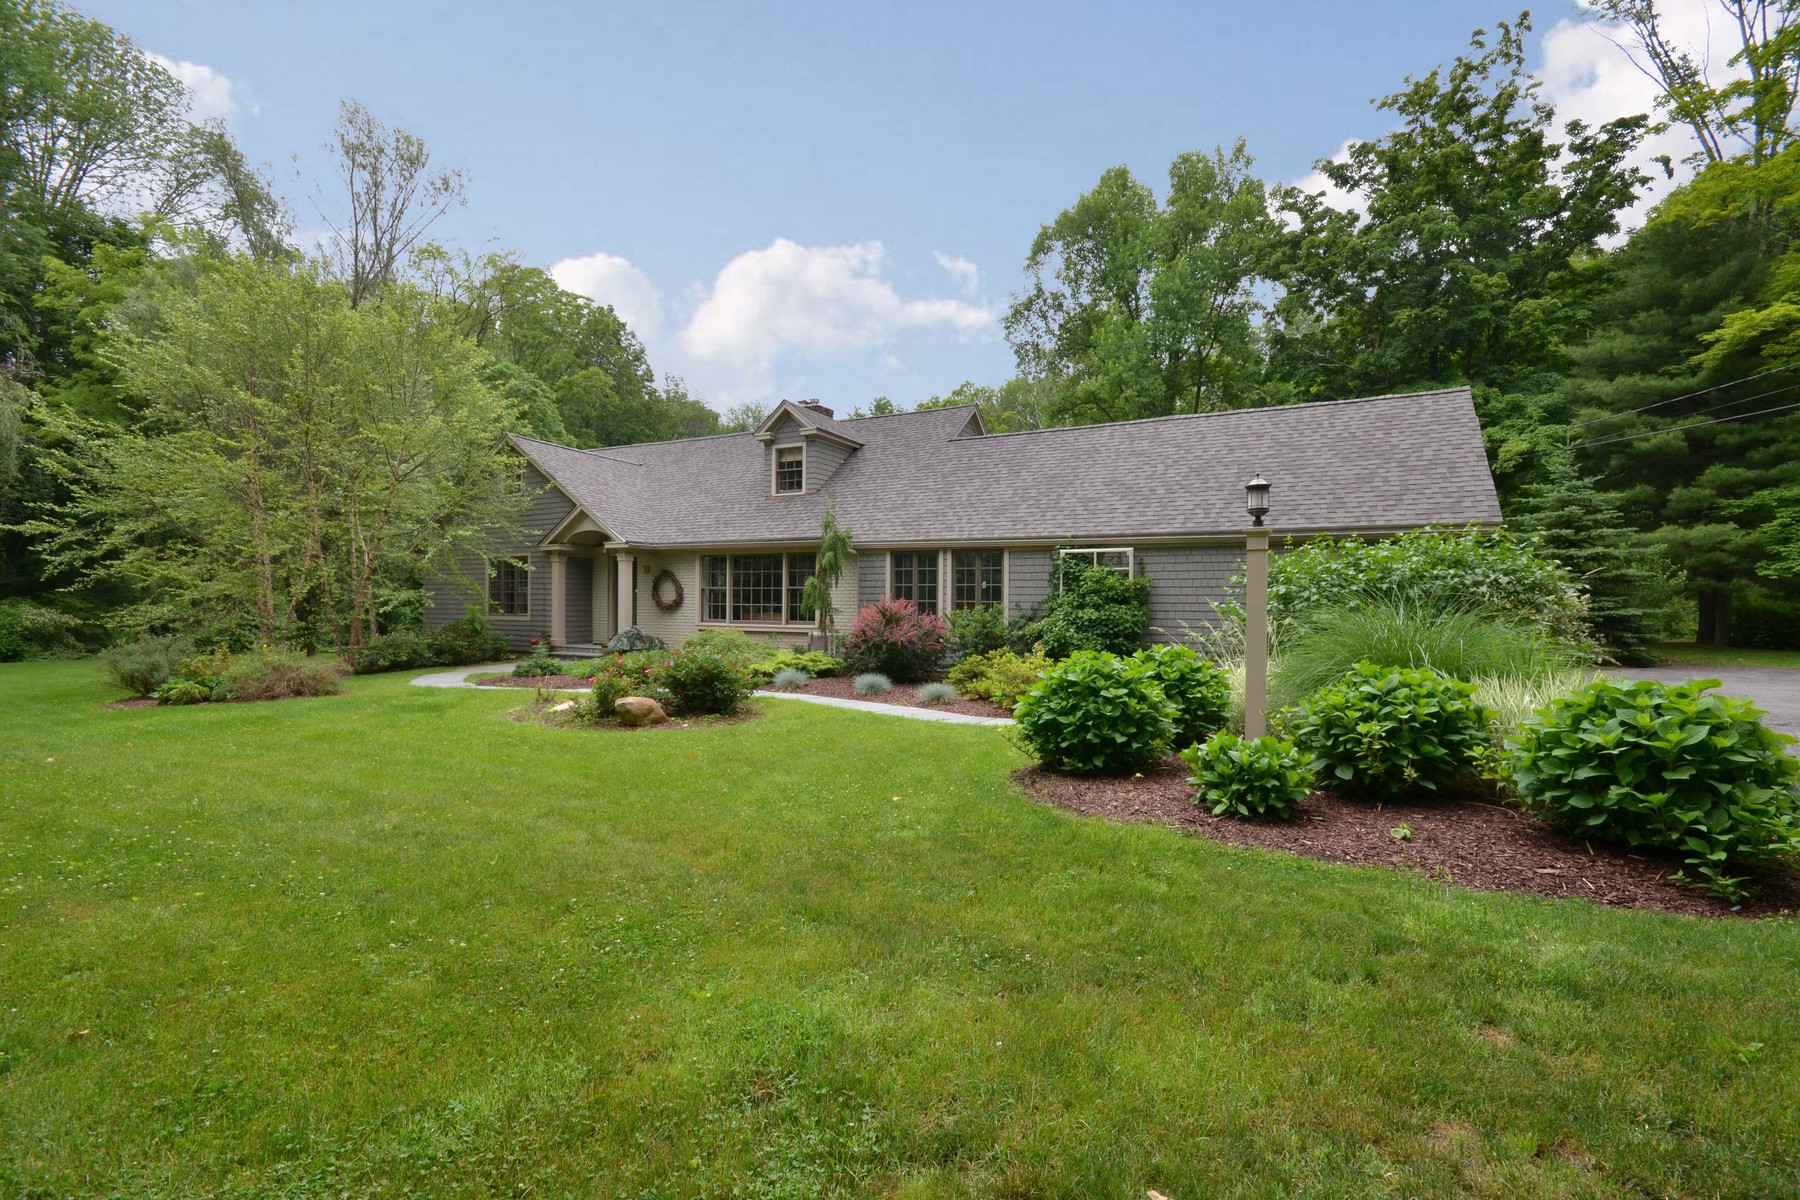 Single Family Home for Sale at 10 Diamond Hill Road Redding, Connecticut 06896 United States